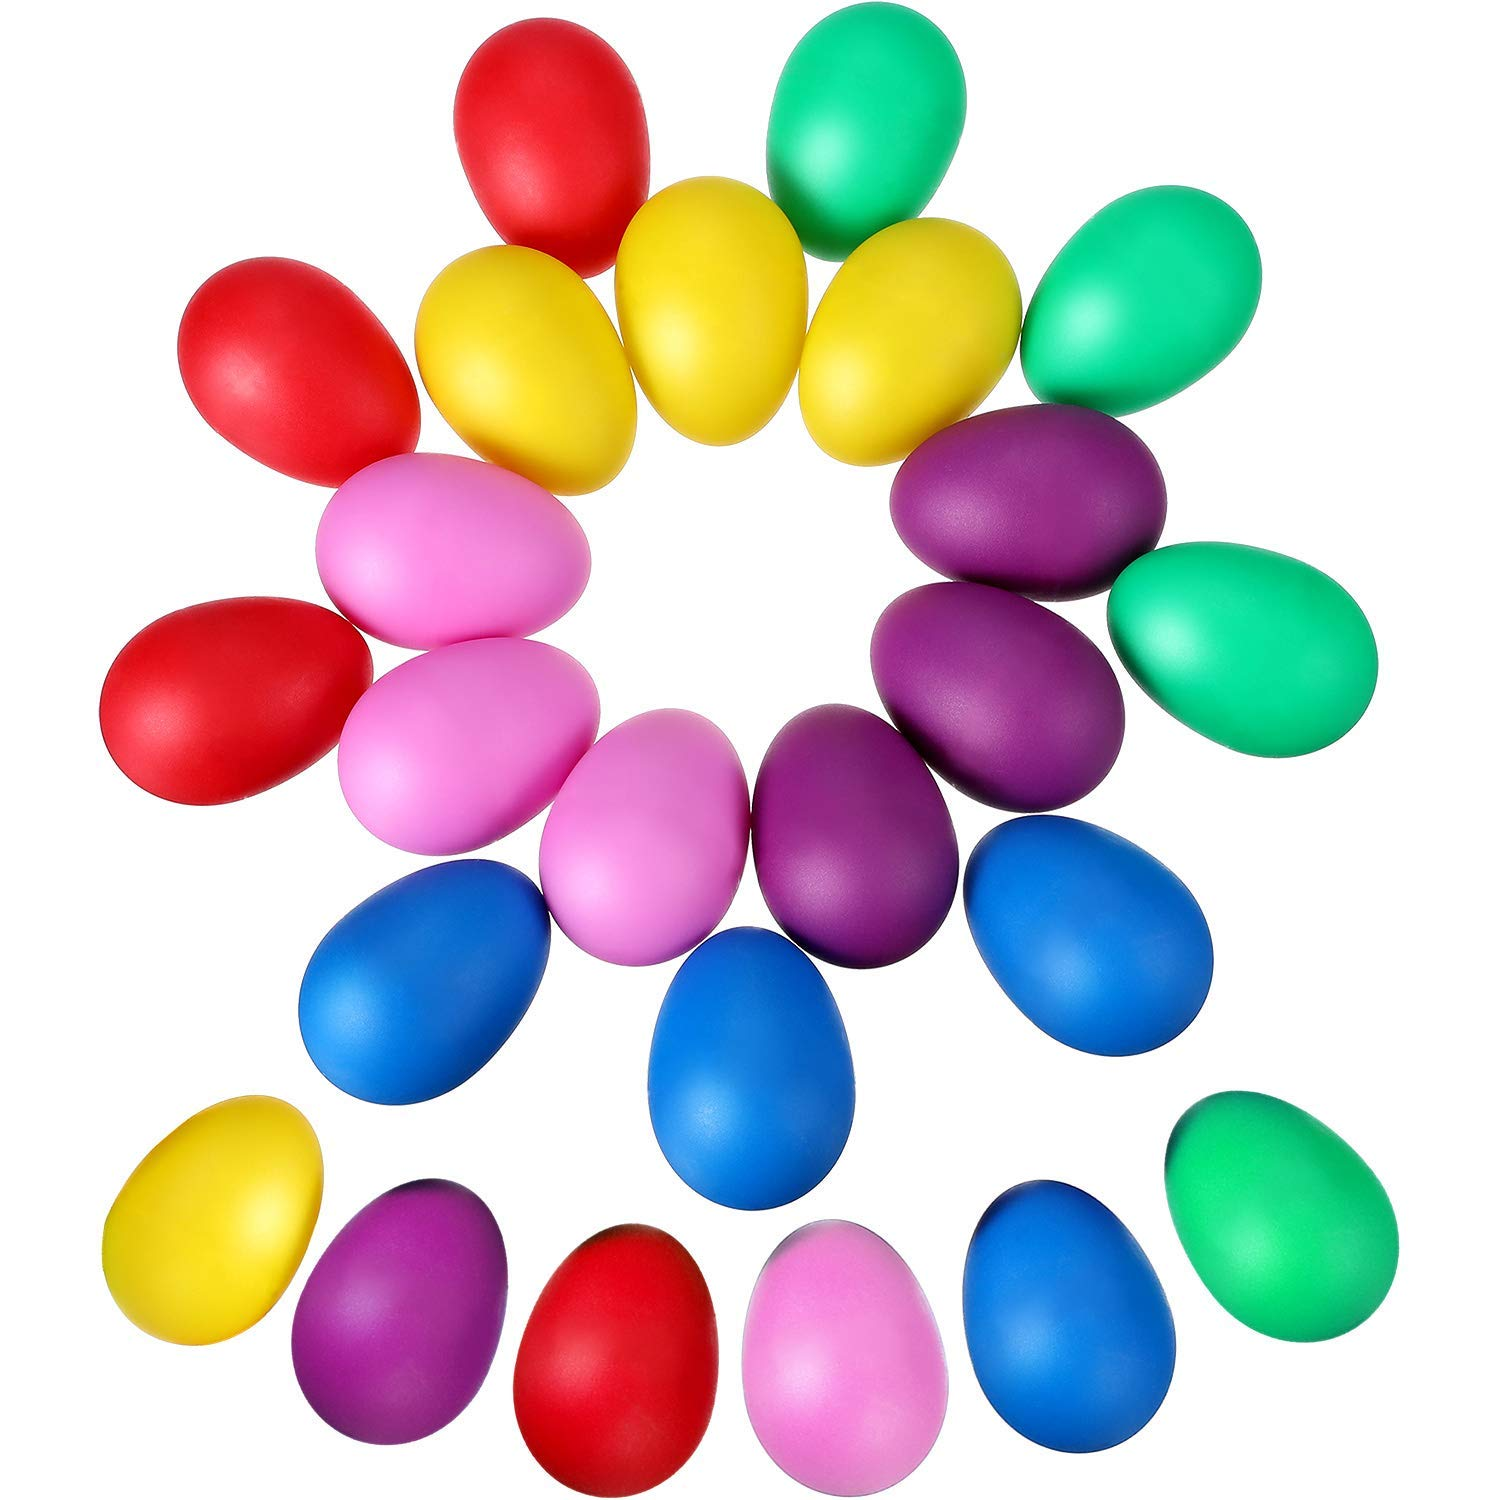 Hestya 24 Pieces Egg Shaker Set Maracas Eggs Musical Eggs Egg Shakers Plastic Eggs for Kids Party Supplies Musical Toys, 6 Colors